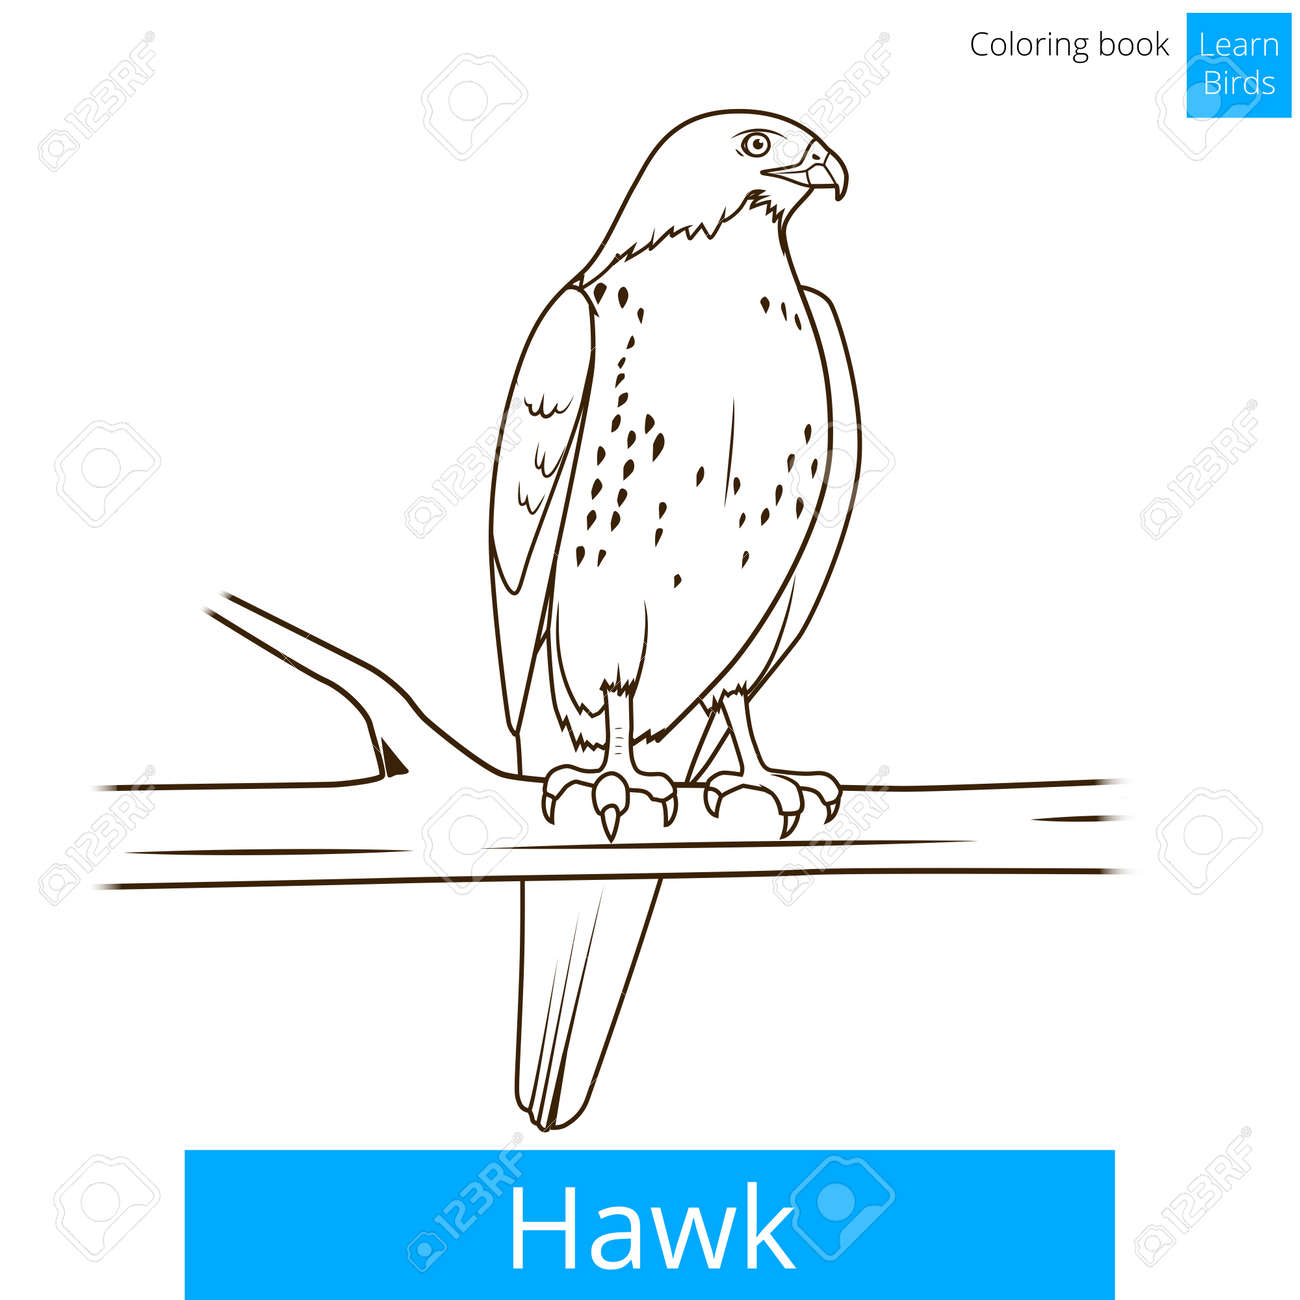 Hawk Bird Learn Birds Educational Game Coloring Book Vector Illustration Stock